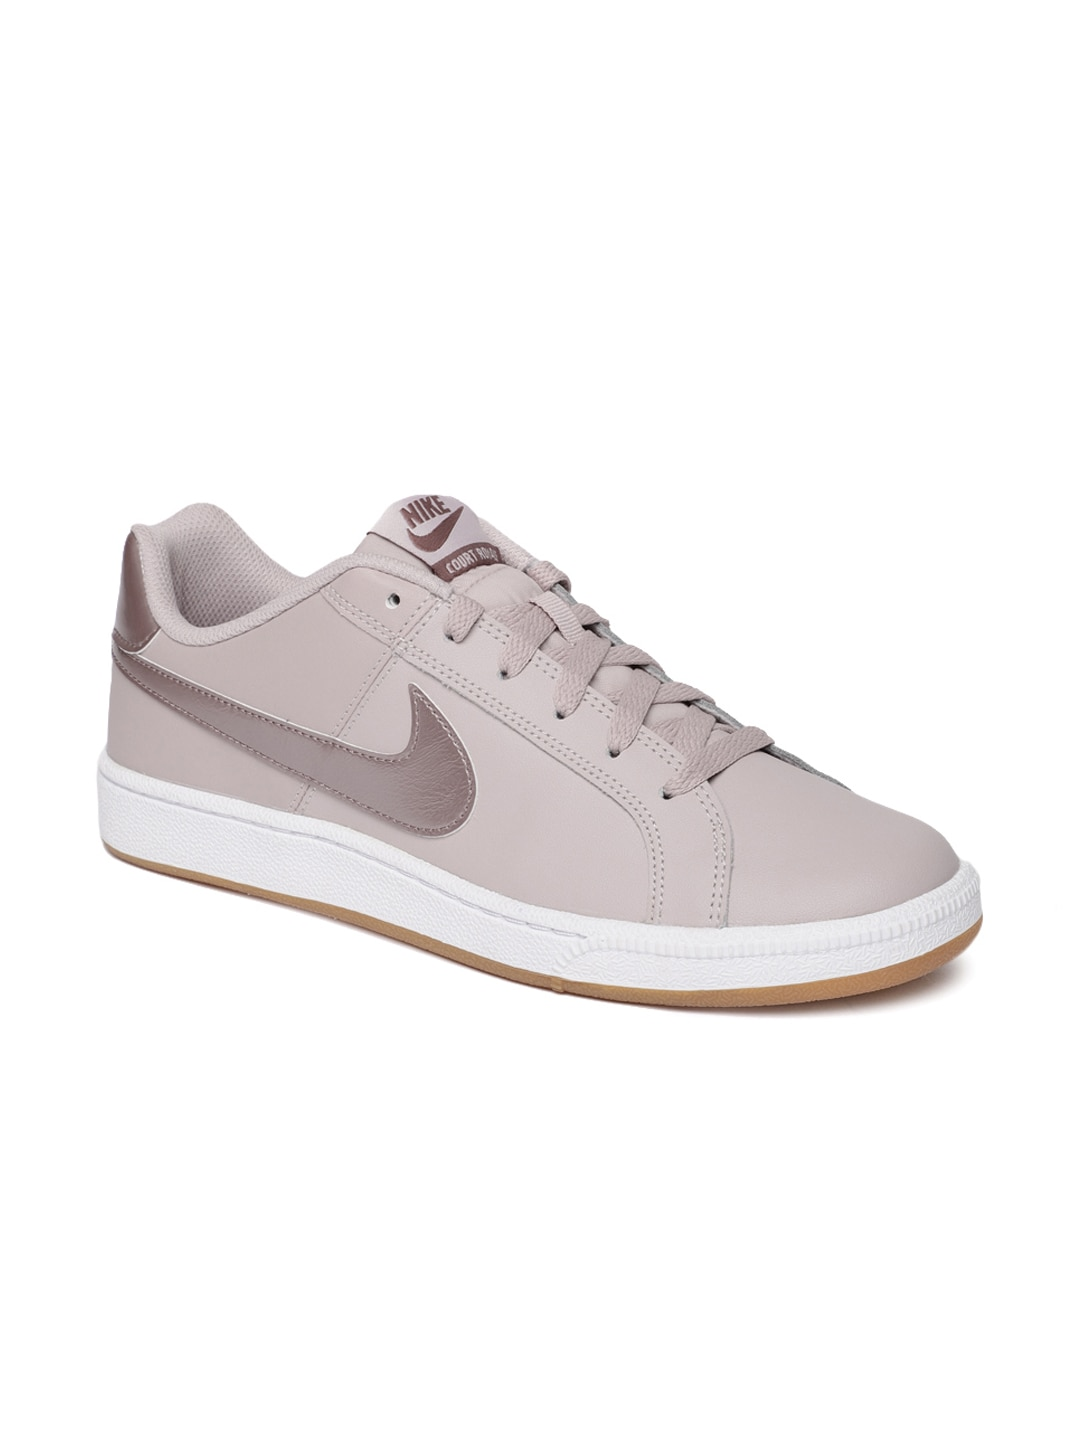 newest a481e be6cb Sports Shoes for Women - Buy Women Sports Shoes Online   Myntra